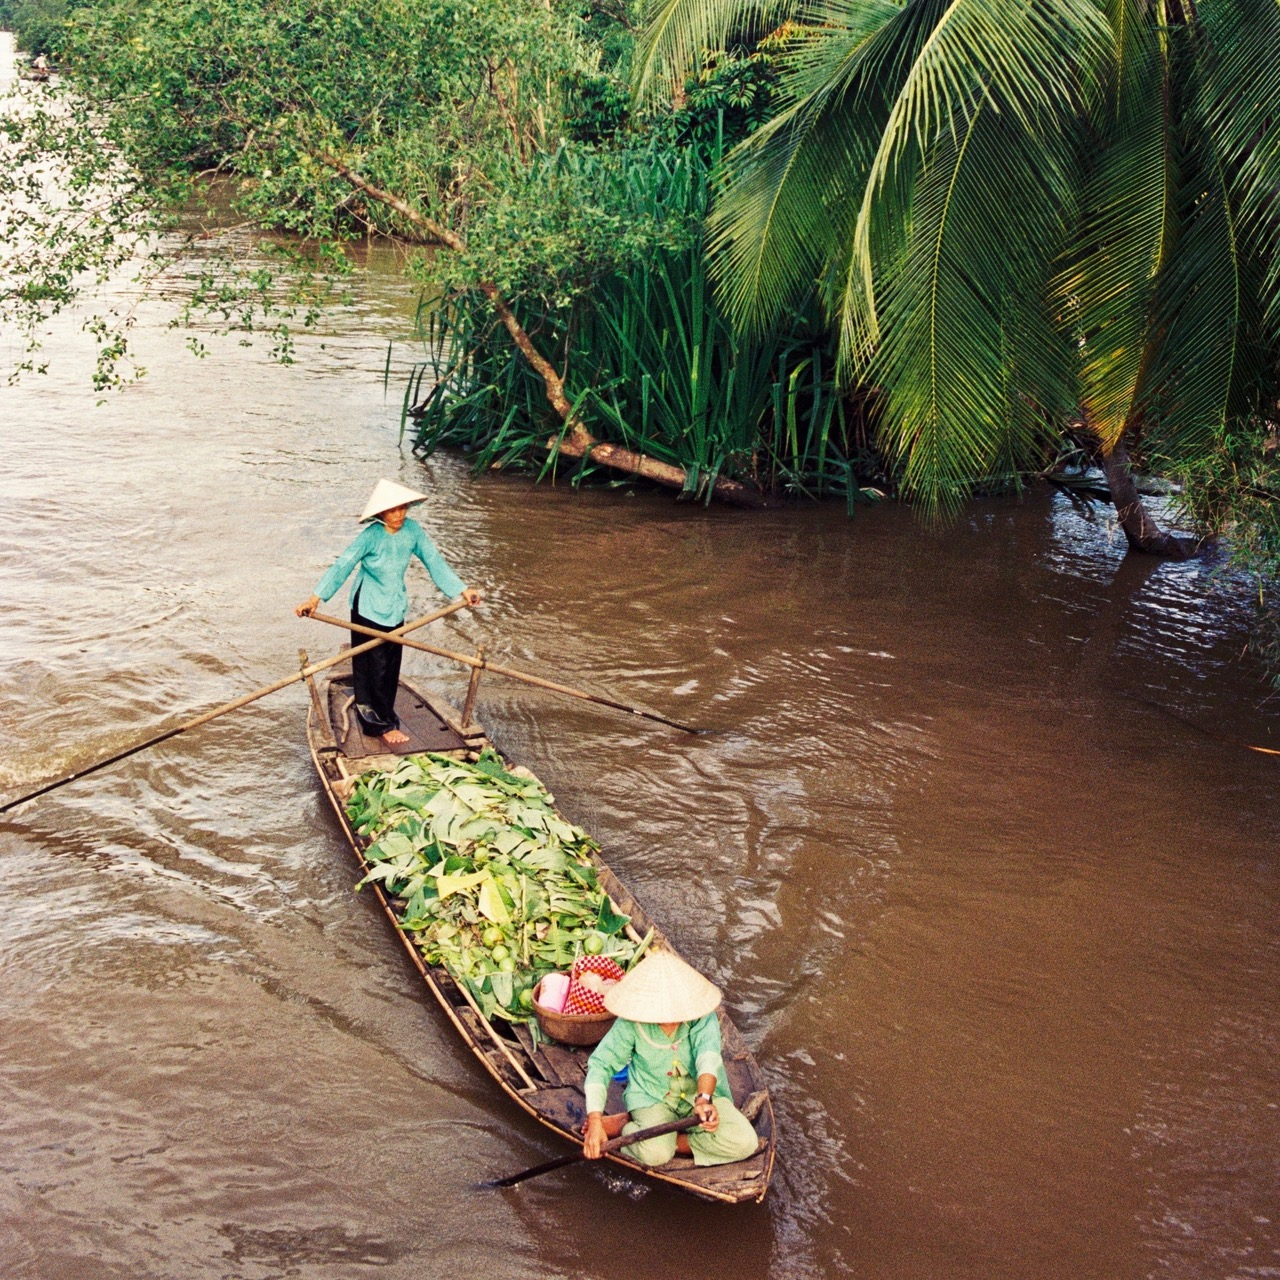 Woman padding a boat with vegetables in Vietnam